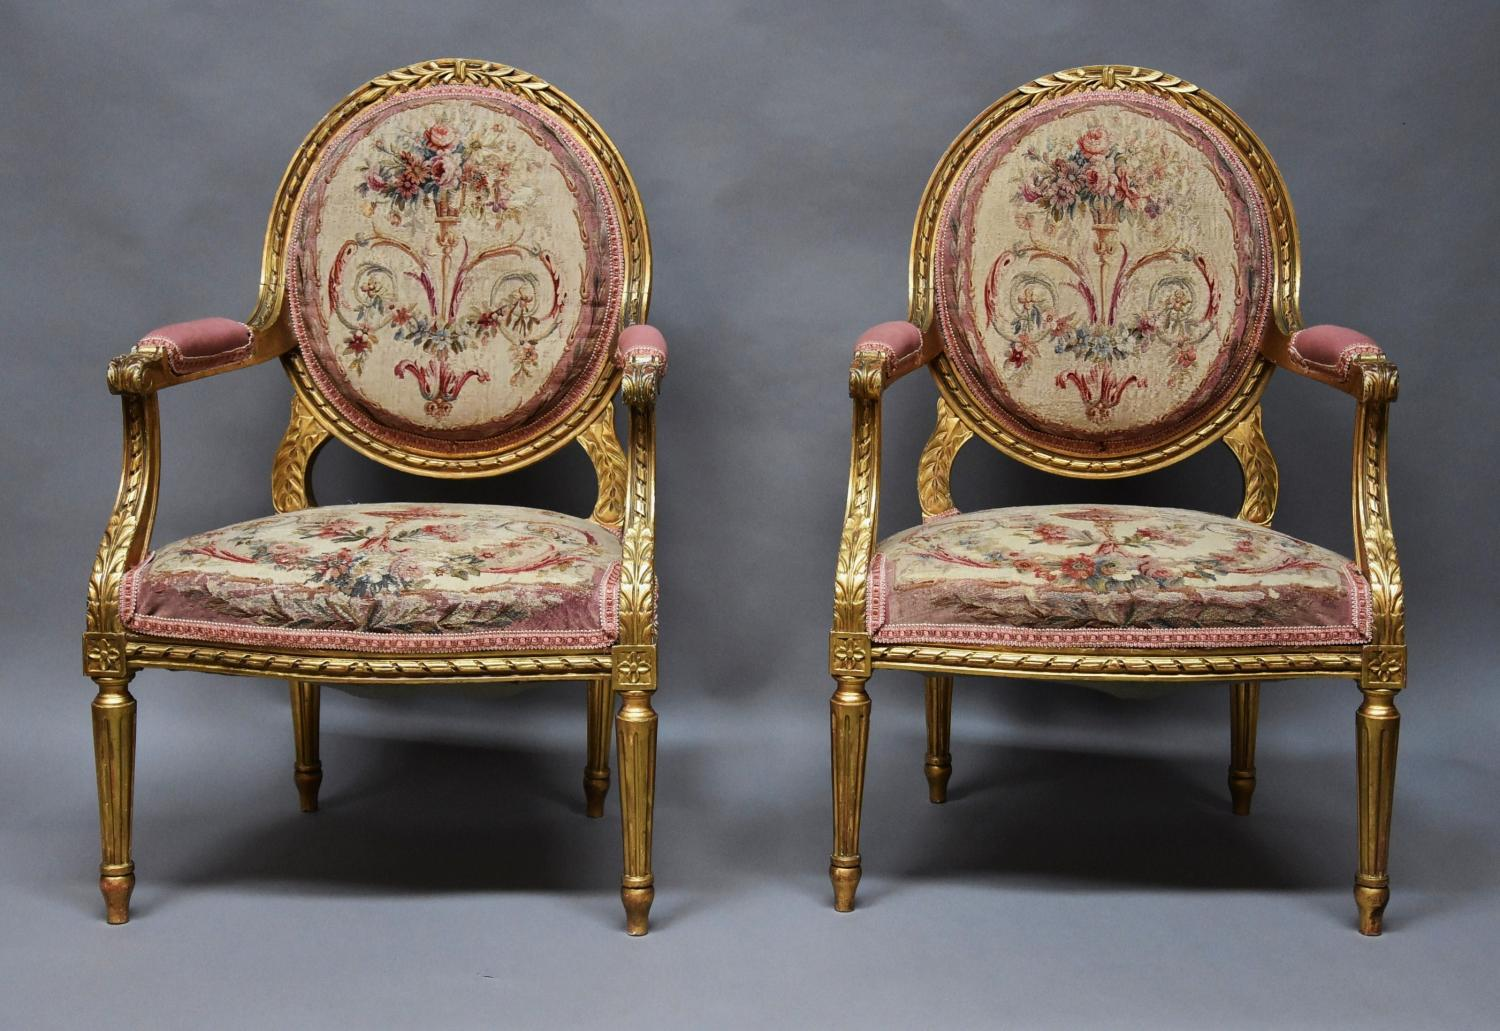 French gilt armchairs with Aubusson tapestry